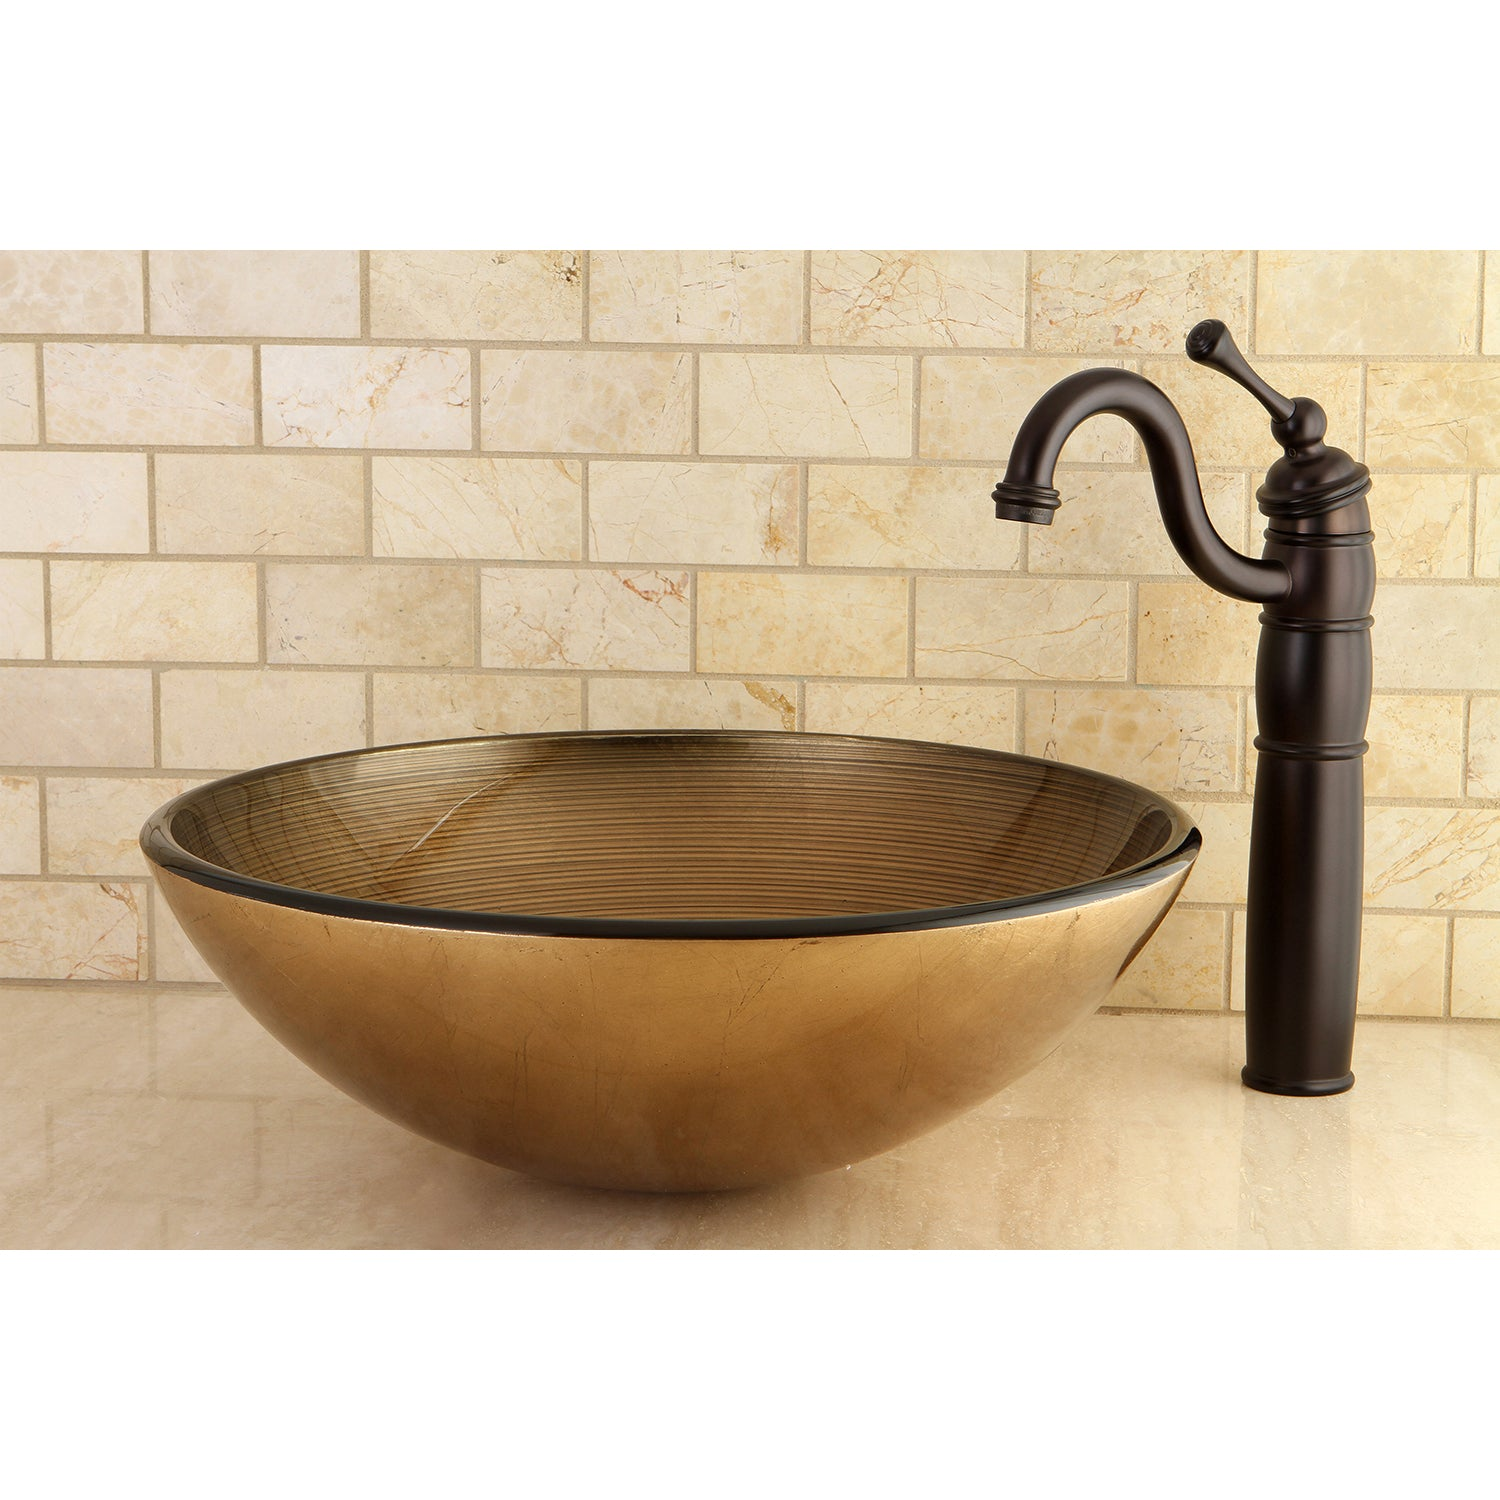 Vessel Sink Faucets Oil Rubbed Bronze.Heritage Vessel Sink Faucet In Oil Rubbed Bronze